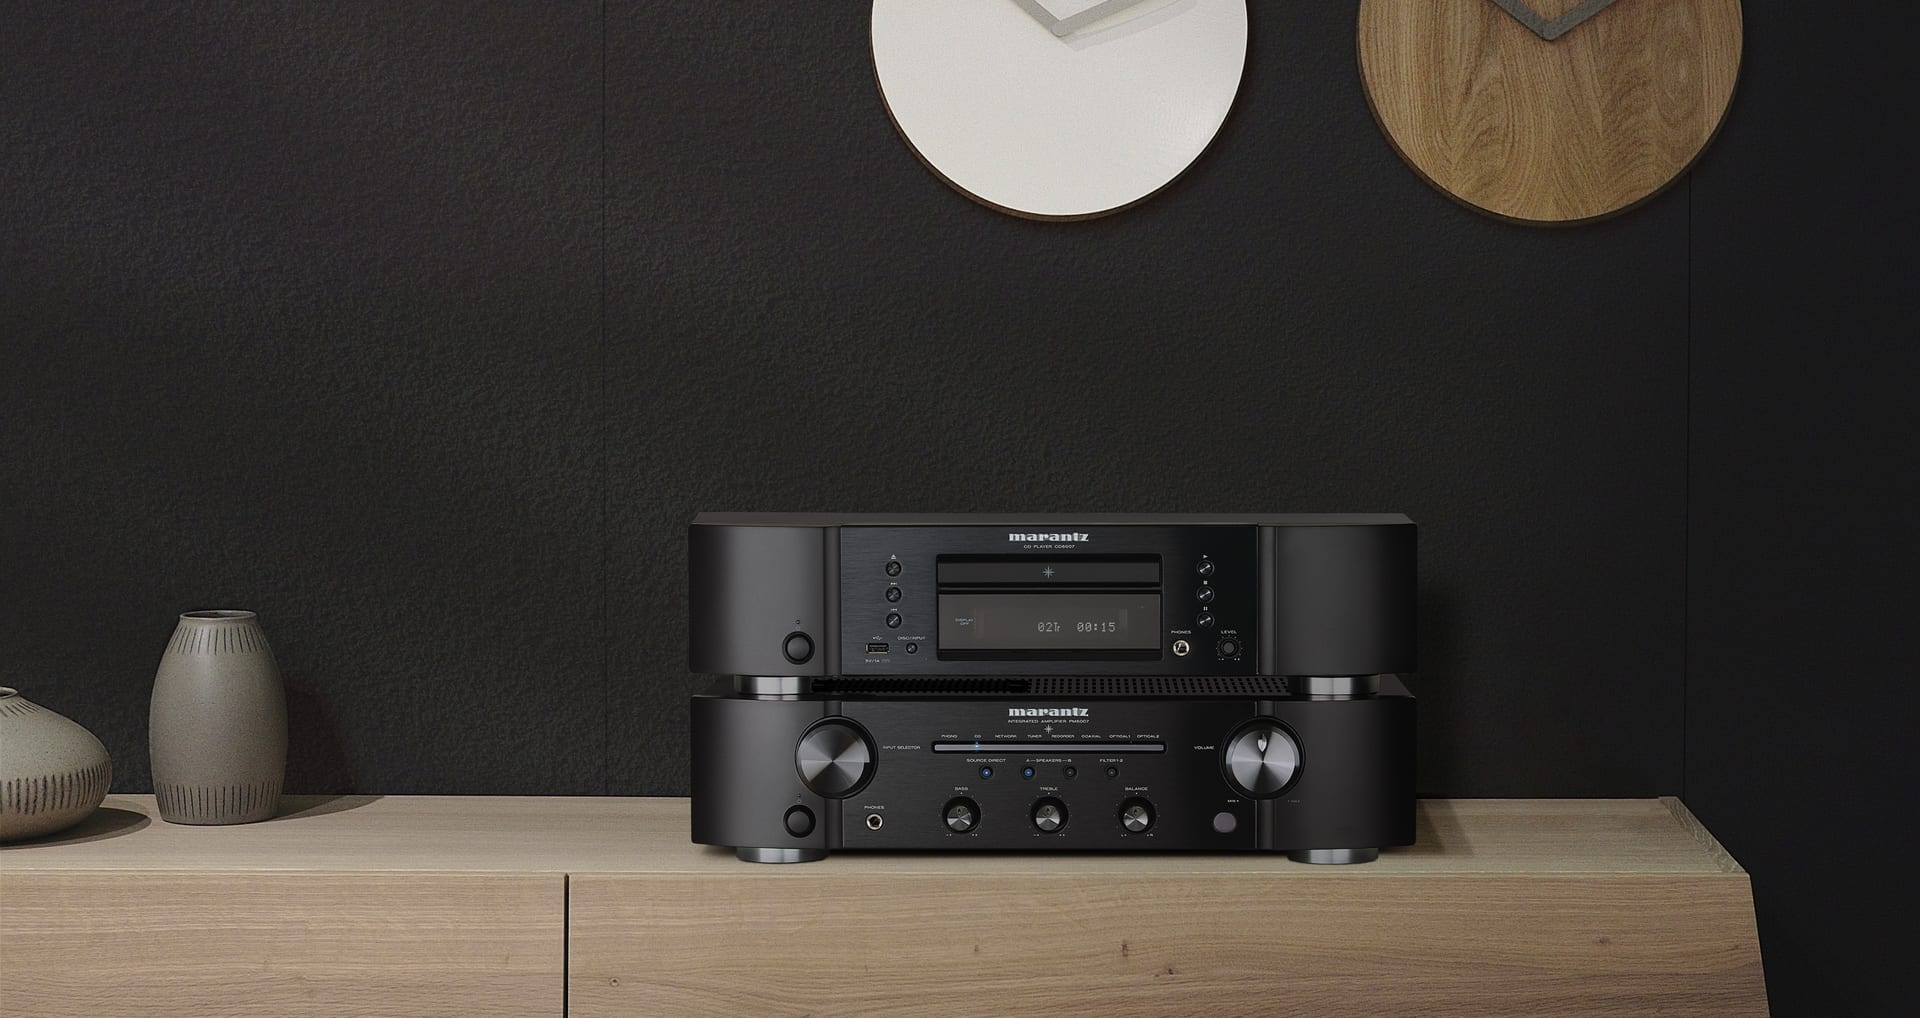 Marantz Introduces New Entry Level Integrated Amp and CD Player